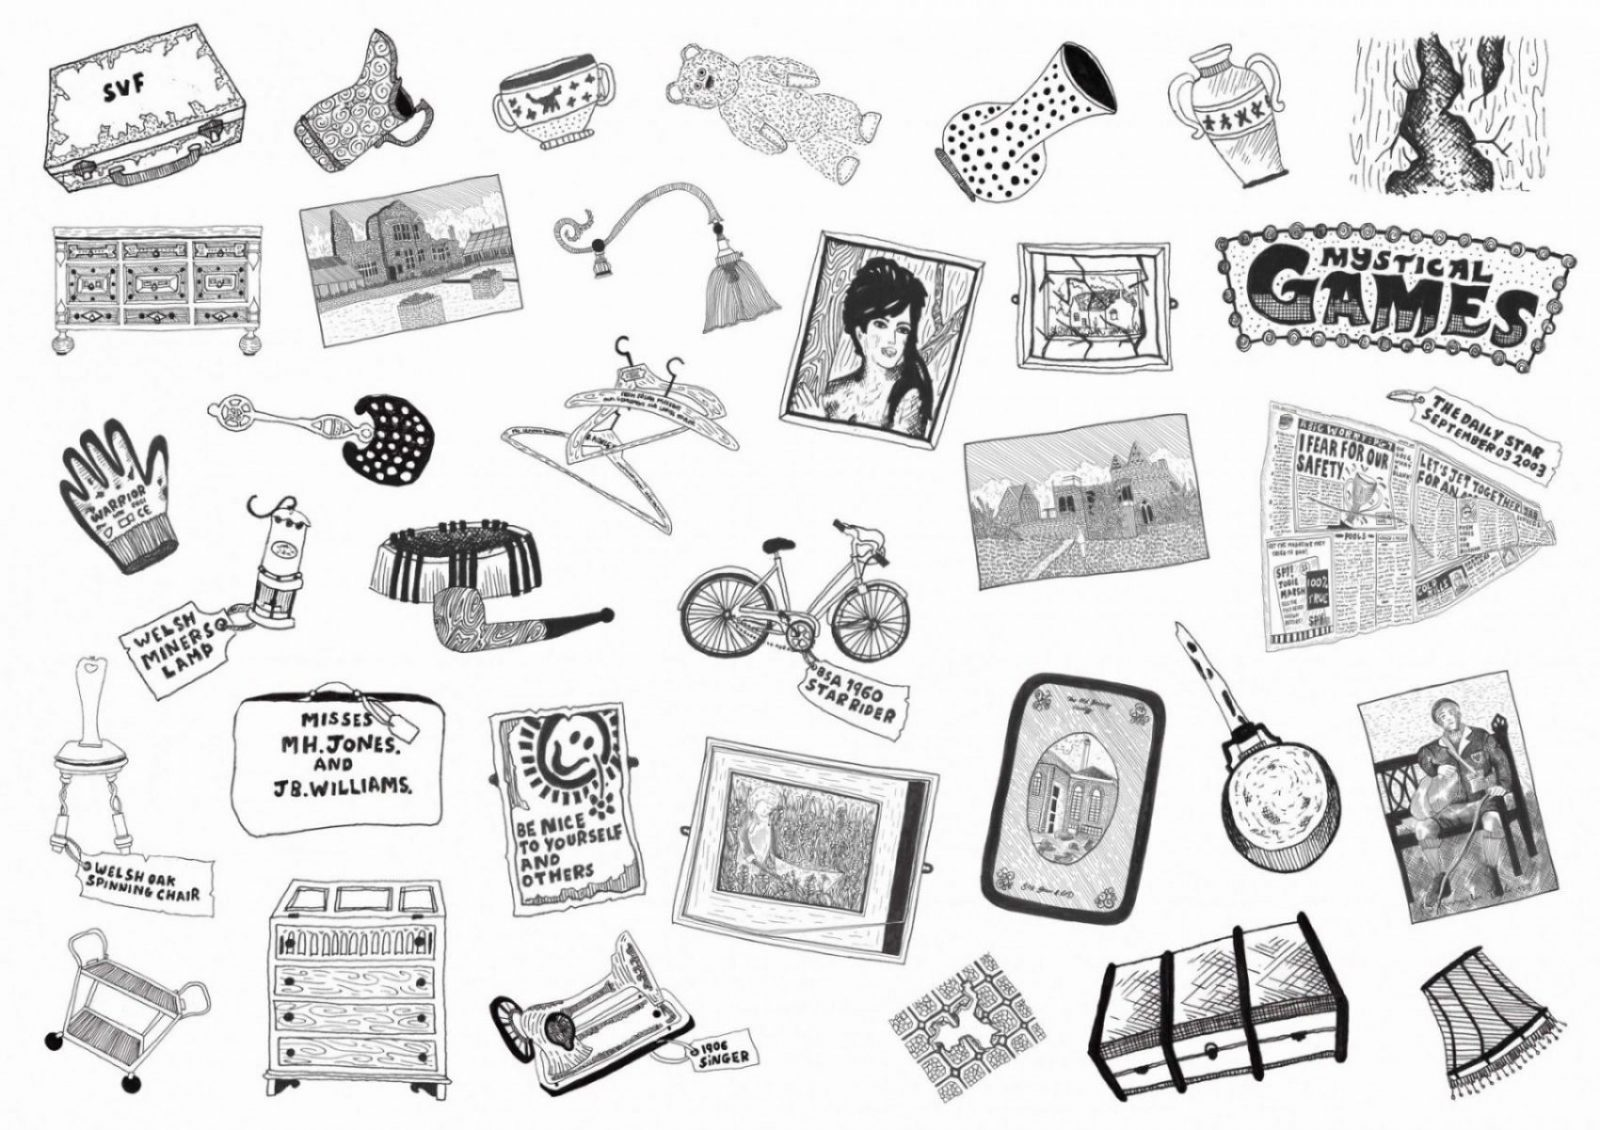 An image of an assortment of objects that can be found in and around Whitchurch; examples of things to be investigated and sold in the on site laboratory and shop.